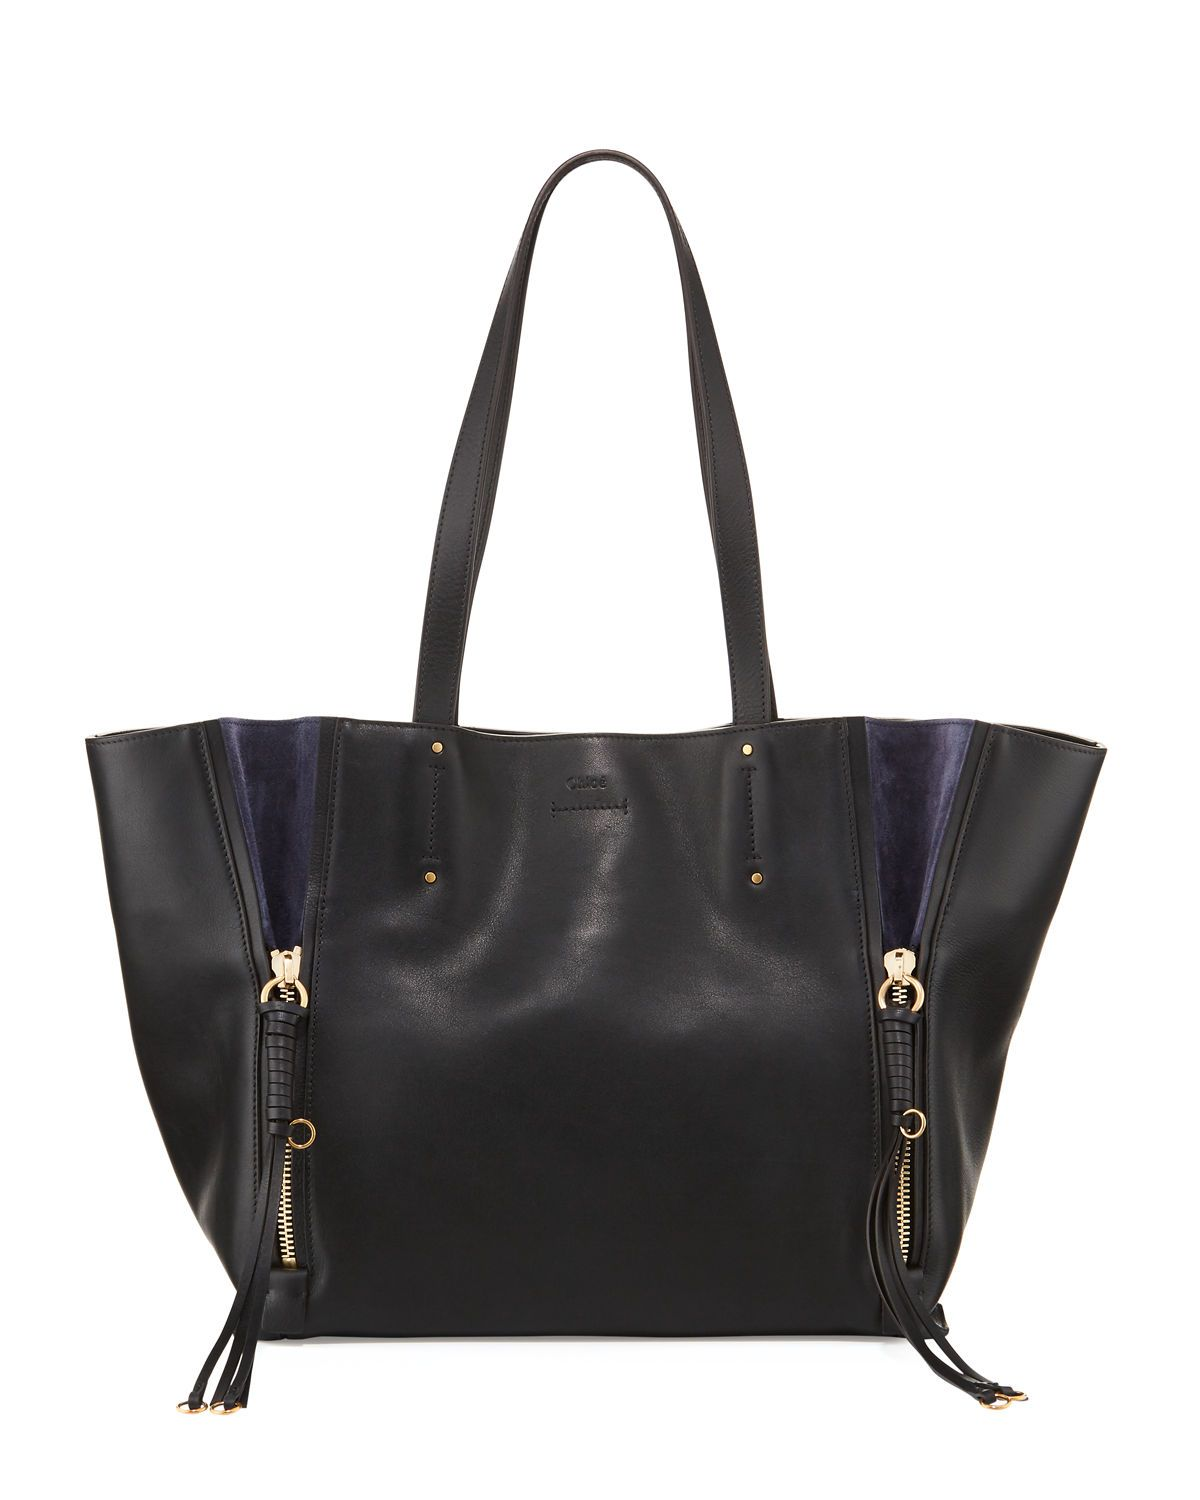 018db4bc211 Designer Tote Bags : Leather & Large Tote Bags at Neiman Marcus ...